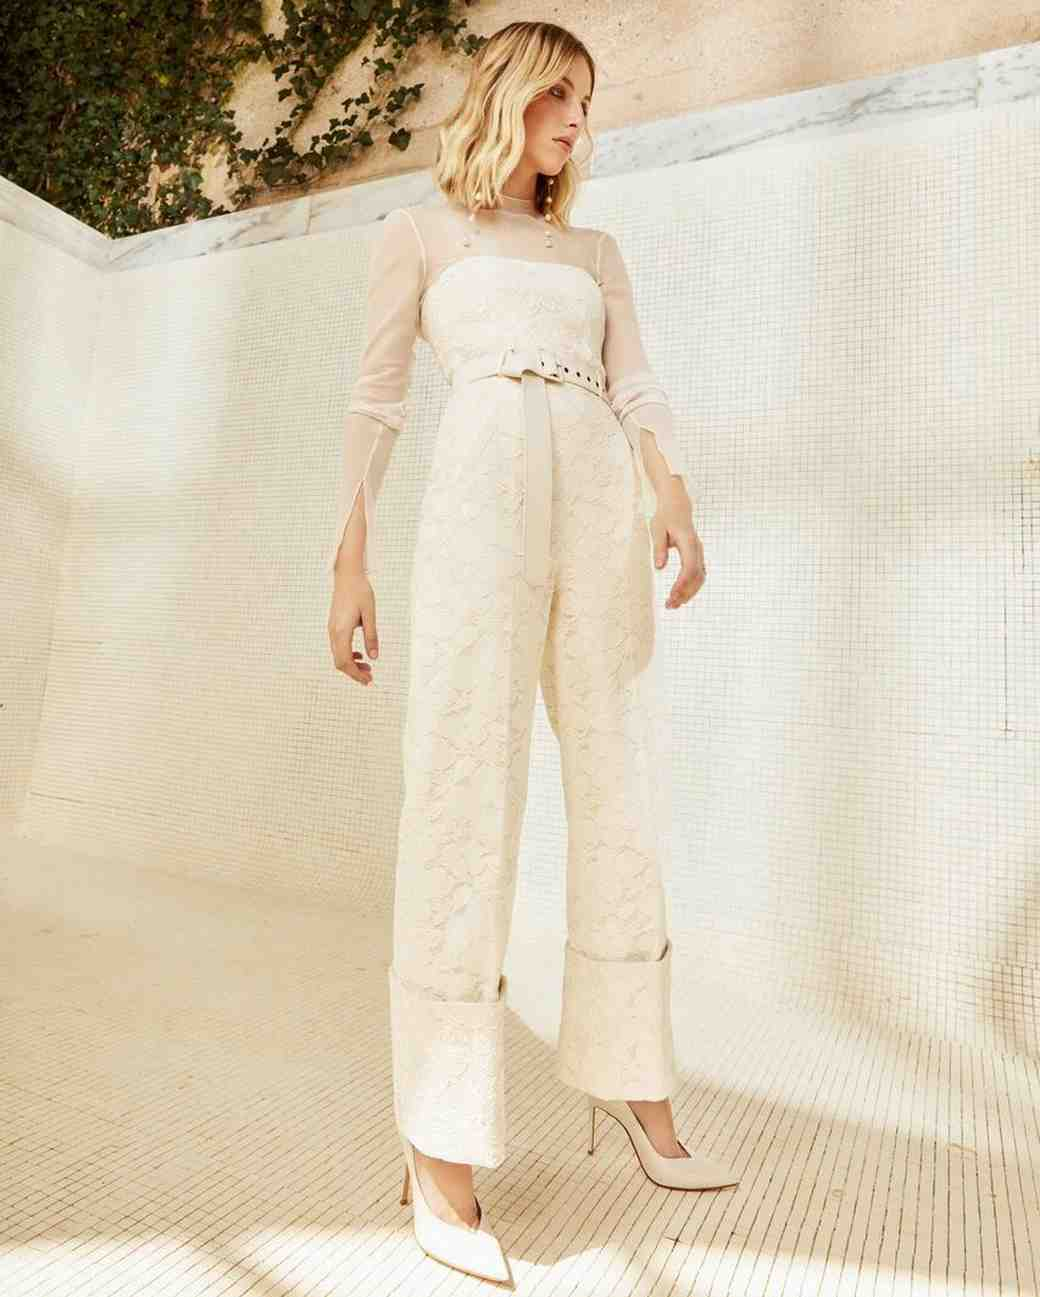 danielle frankel wedding jumpsuit